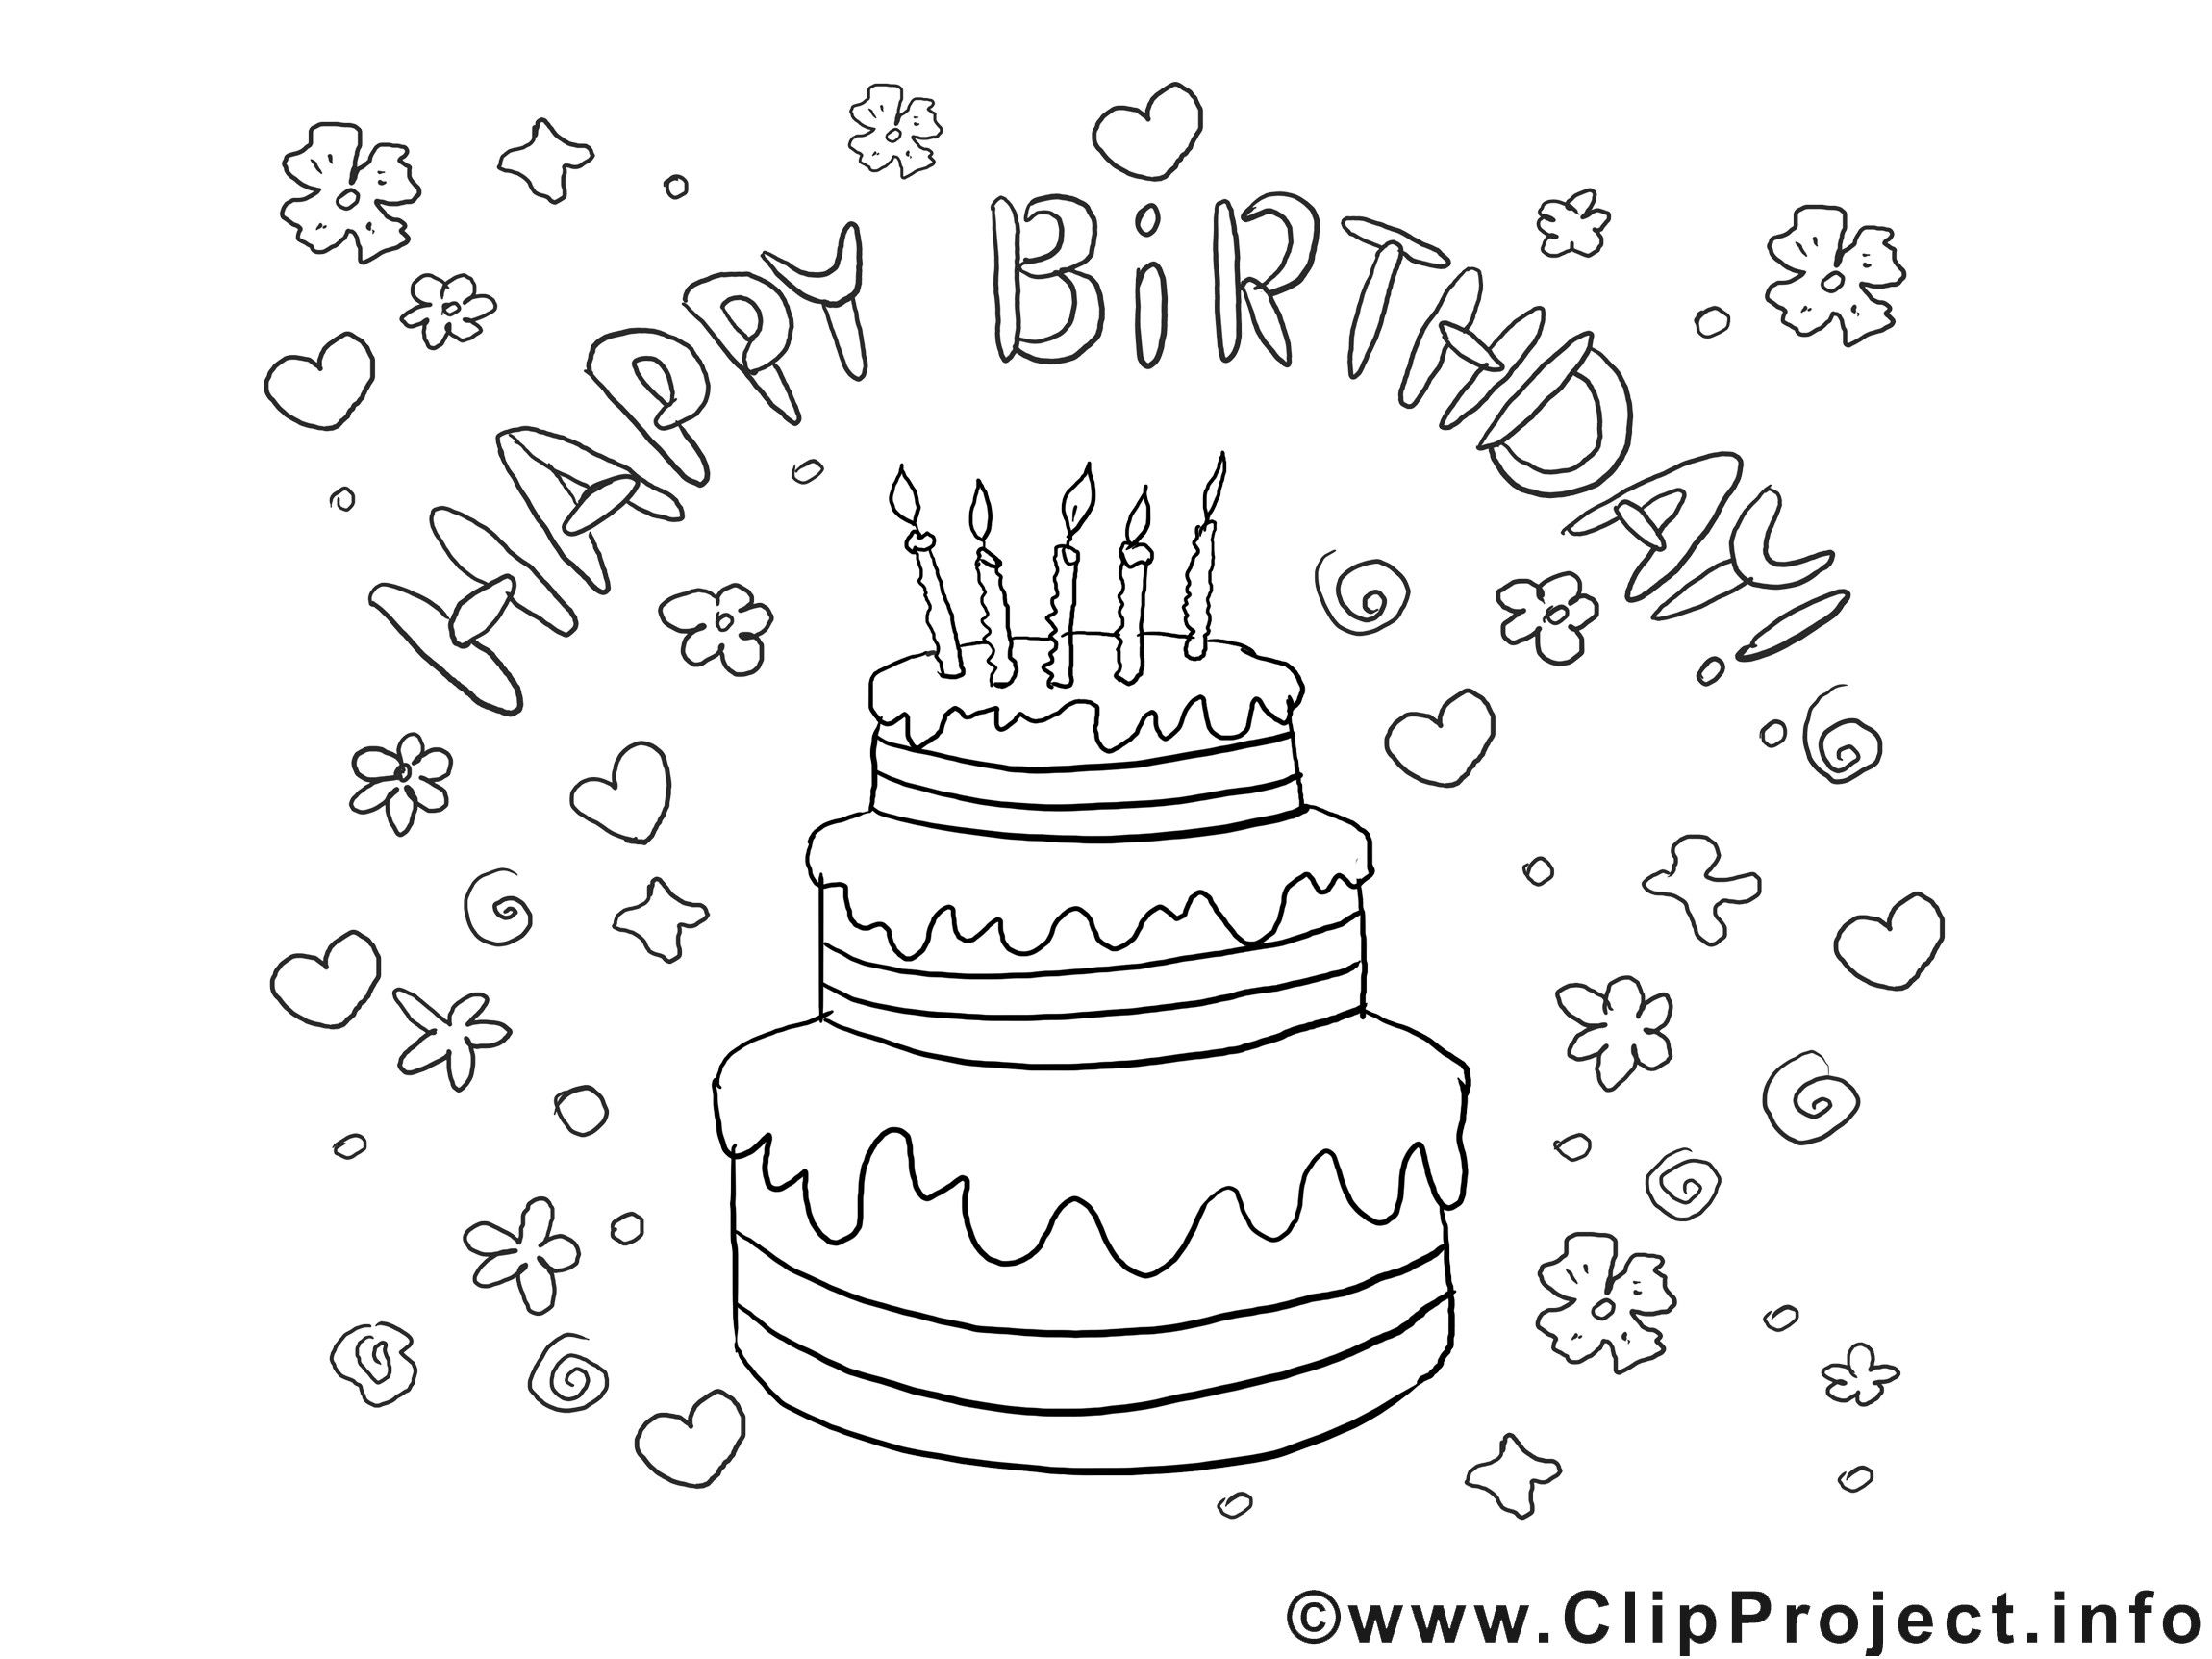 Bild Zum Ausmalen Geburtstag 5332 Die 20 Besten Ideen Fur Geburtstagsbilder Zum Ausdruc Birthday Coloring Pages Birthday Card Printable Coloring Pages For Kids